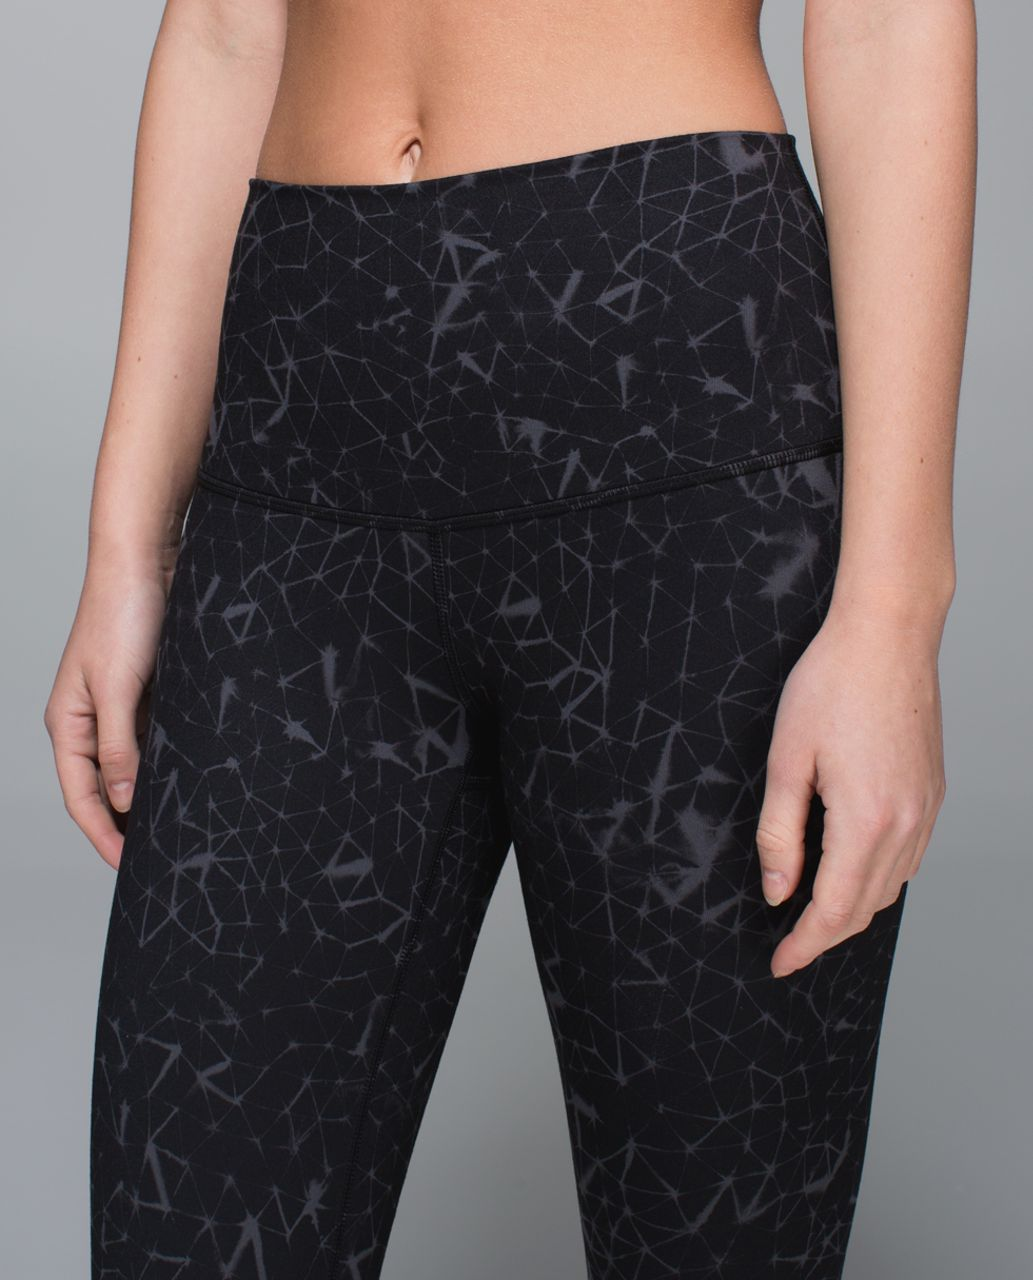 Lululemon Wunder Under Pant *Full-On Luon (Roll Down) - Star Crushed Coal Black